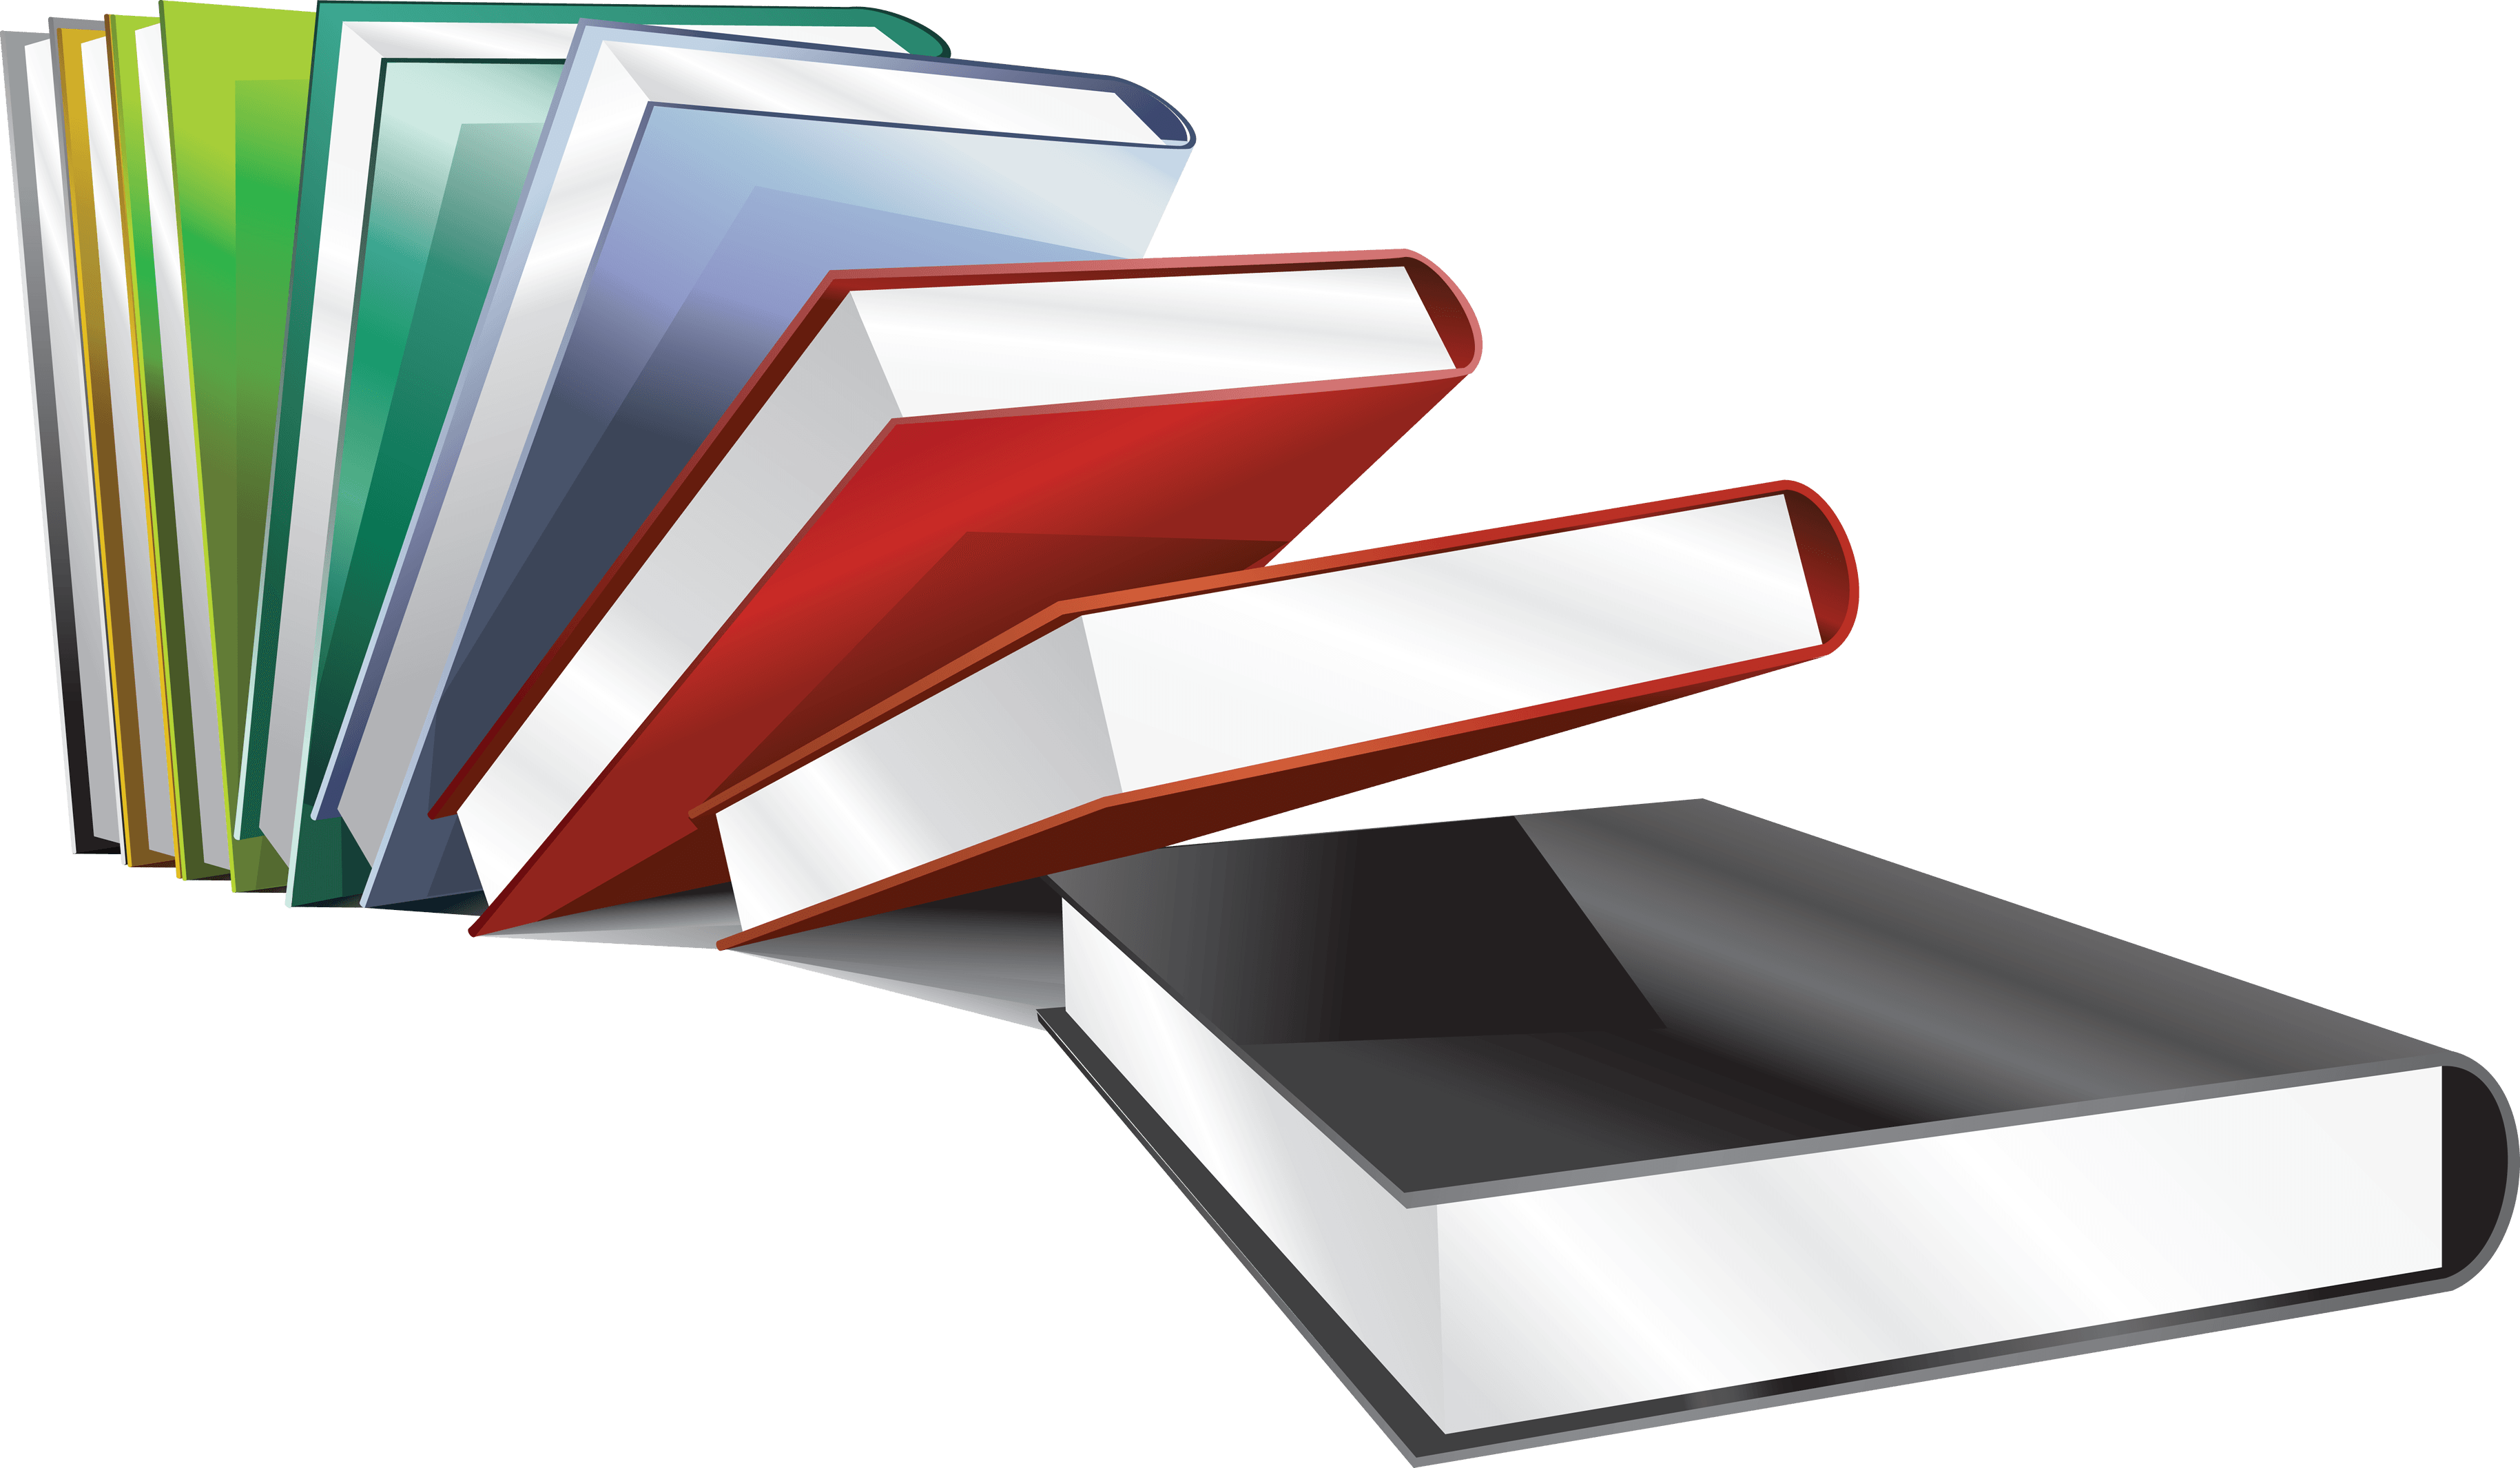 Books Png Image With Transparency Background PNG Image